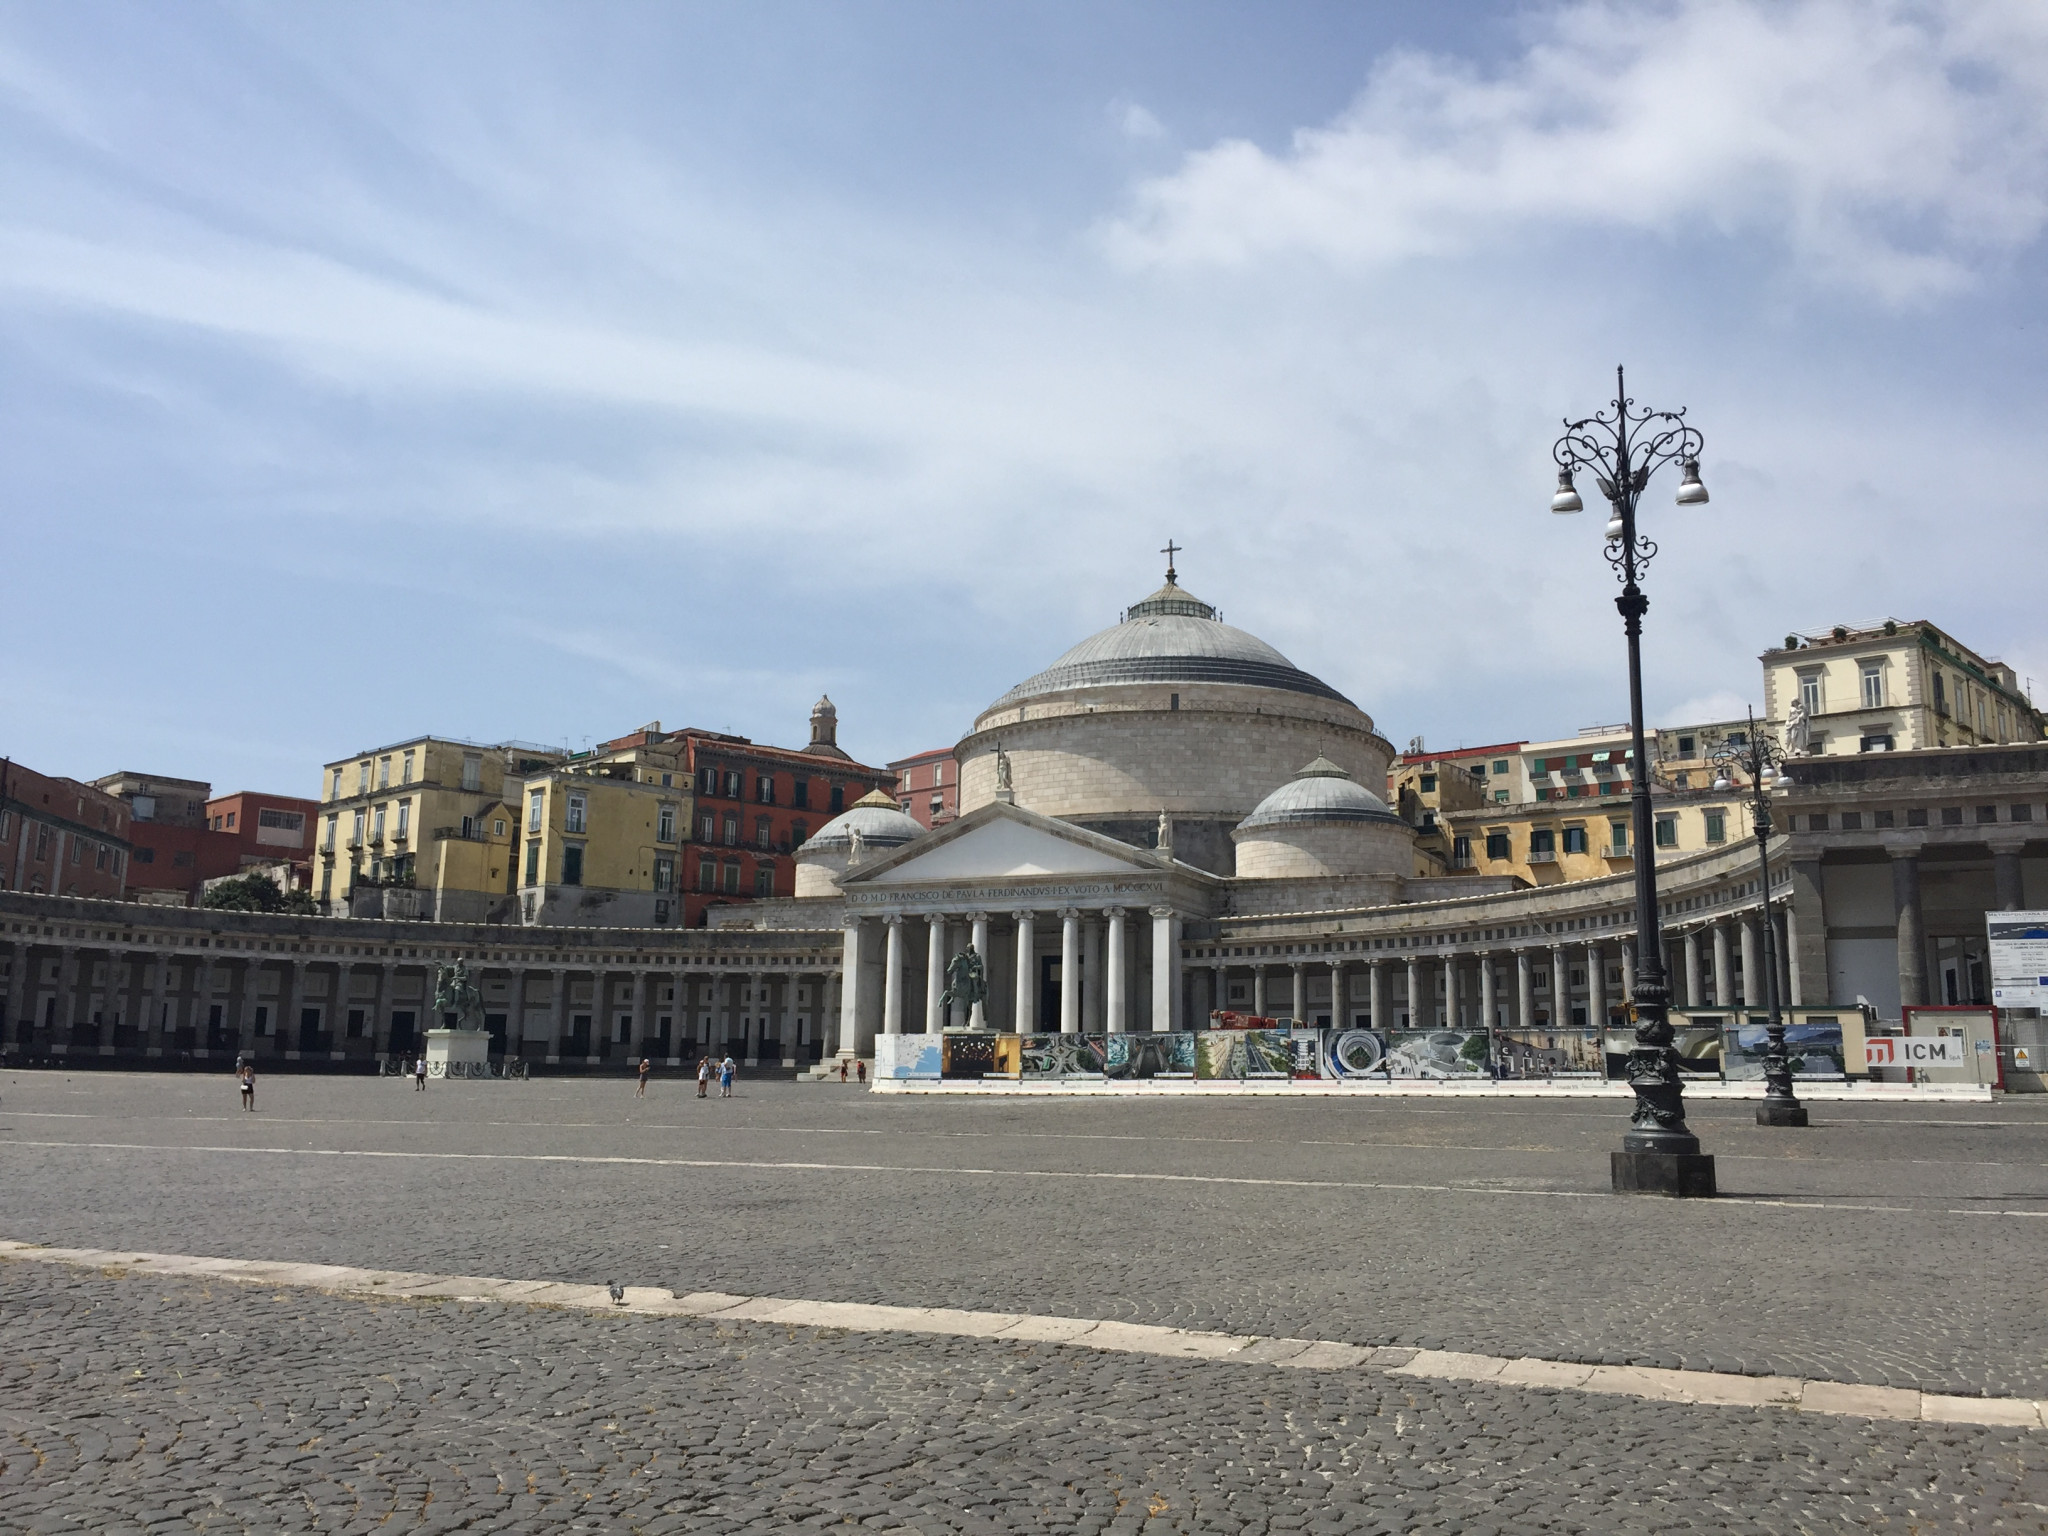 Piazza del Plebiscito had been scheduled to host the Summer Universiade's Closing Ceremony ©ITG